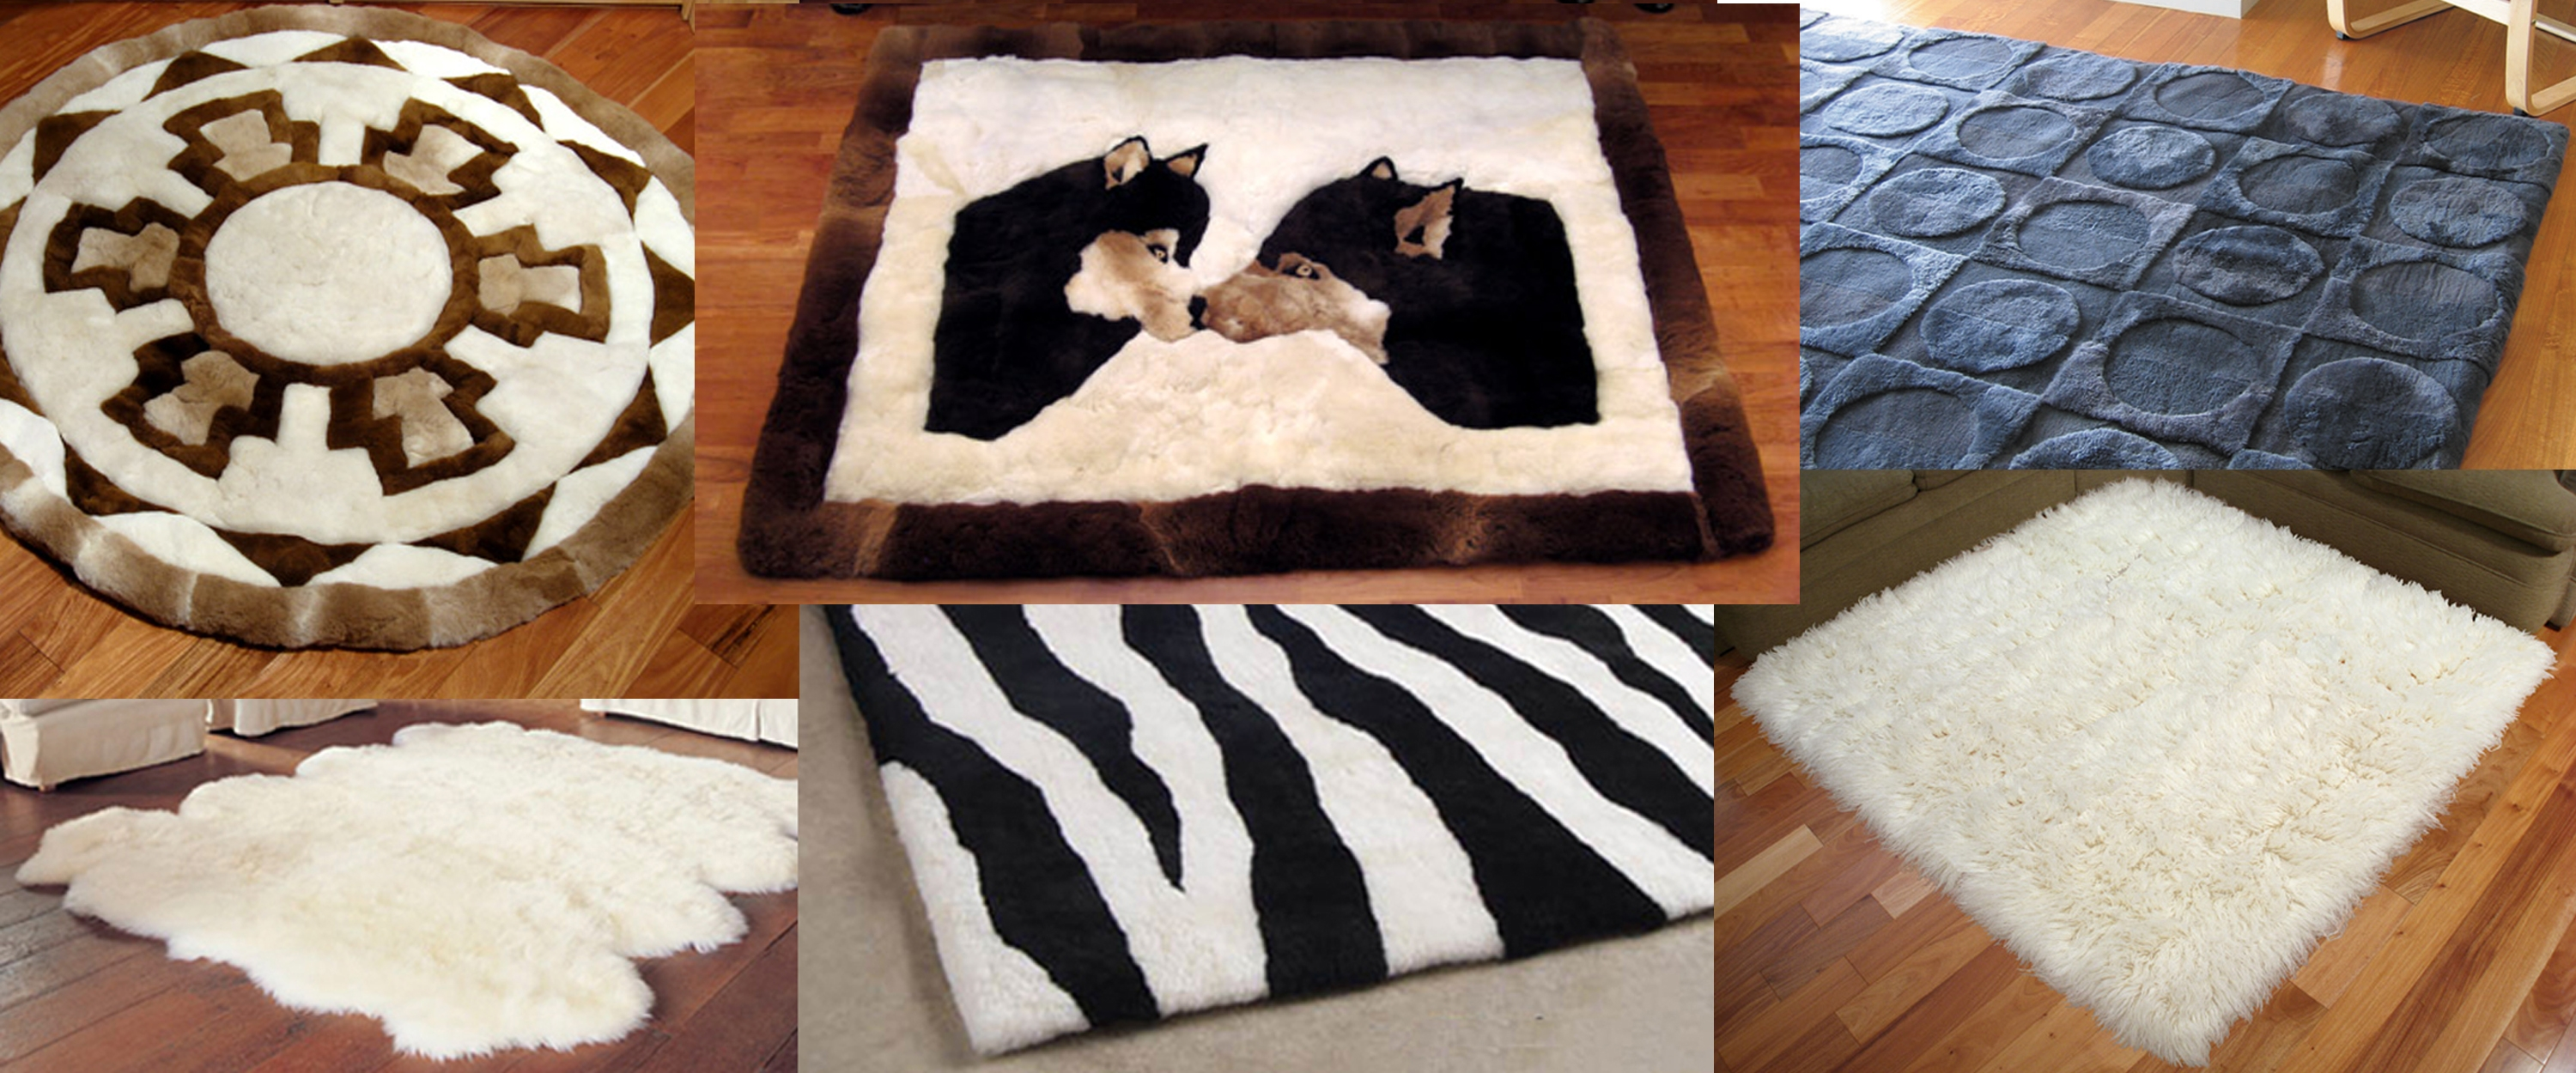 Soft Alpaca Rugs Sheepskin Rugs For Sale Softrugs Pertaining To Alpaca Rugs (Image 15 of 15)